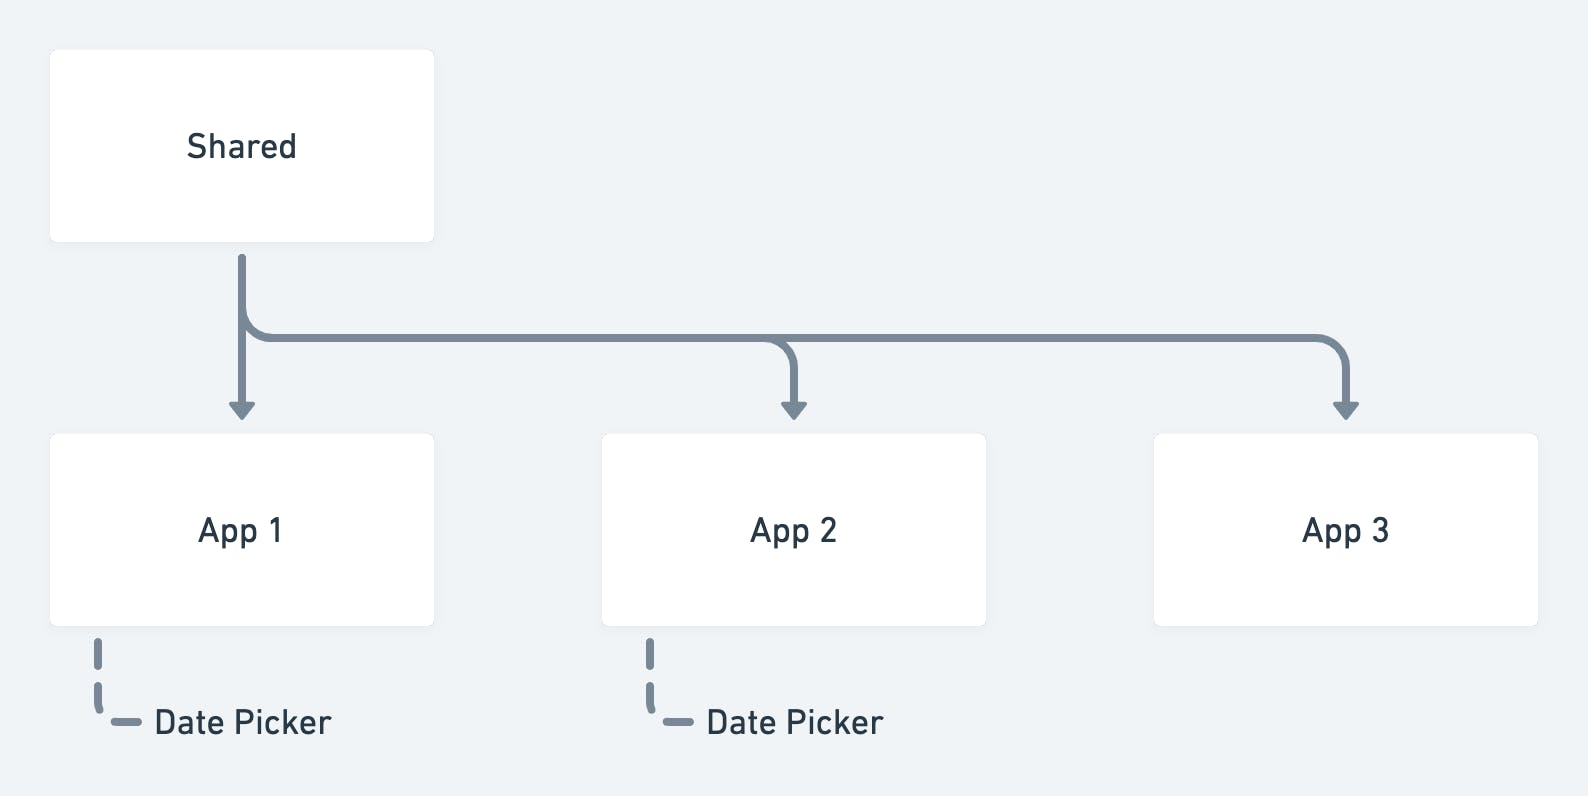 Implementations of date picker component in the applications